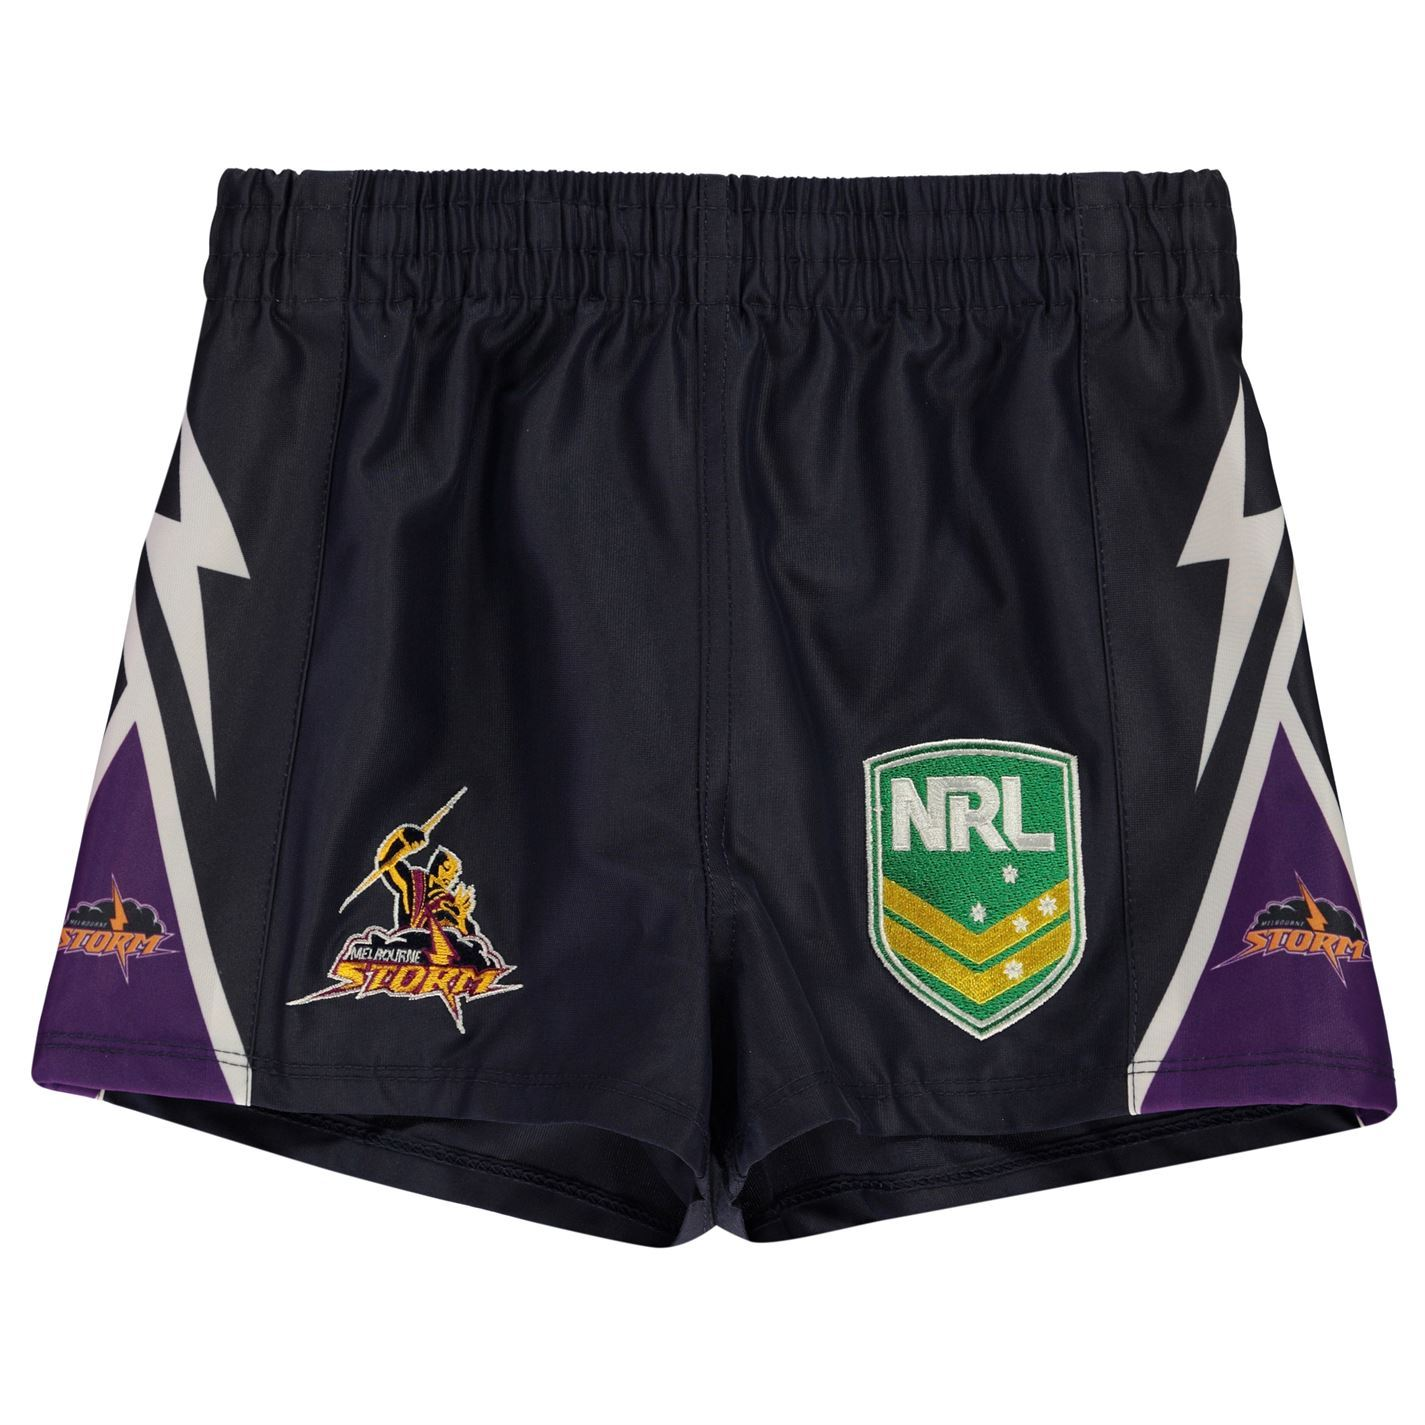 NRL-Supporter-Shorts-Juniors-Rugby-League-Storm-Bulldog-Sea-Eagles-Eels-Roosters thumbnail 9